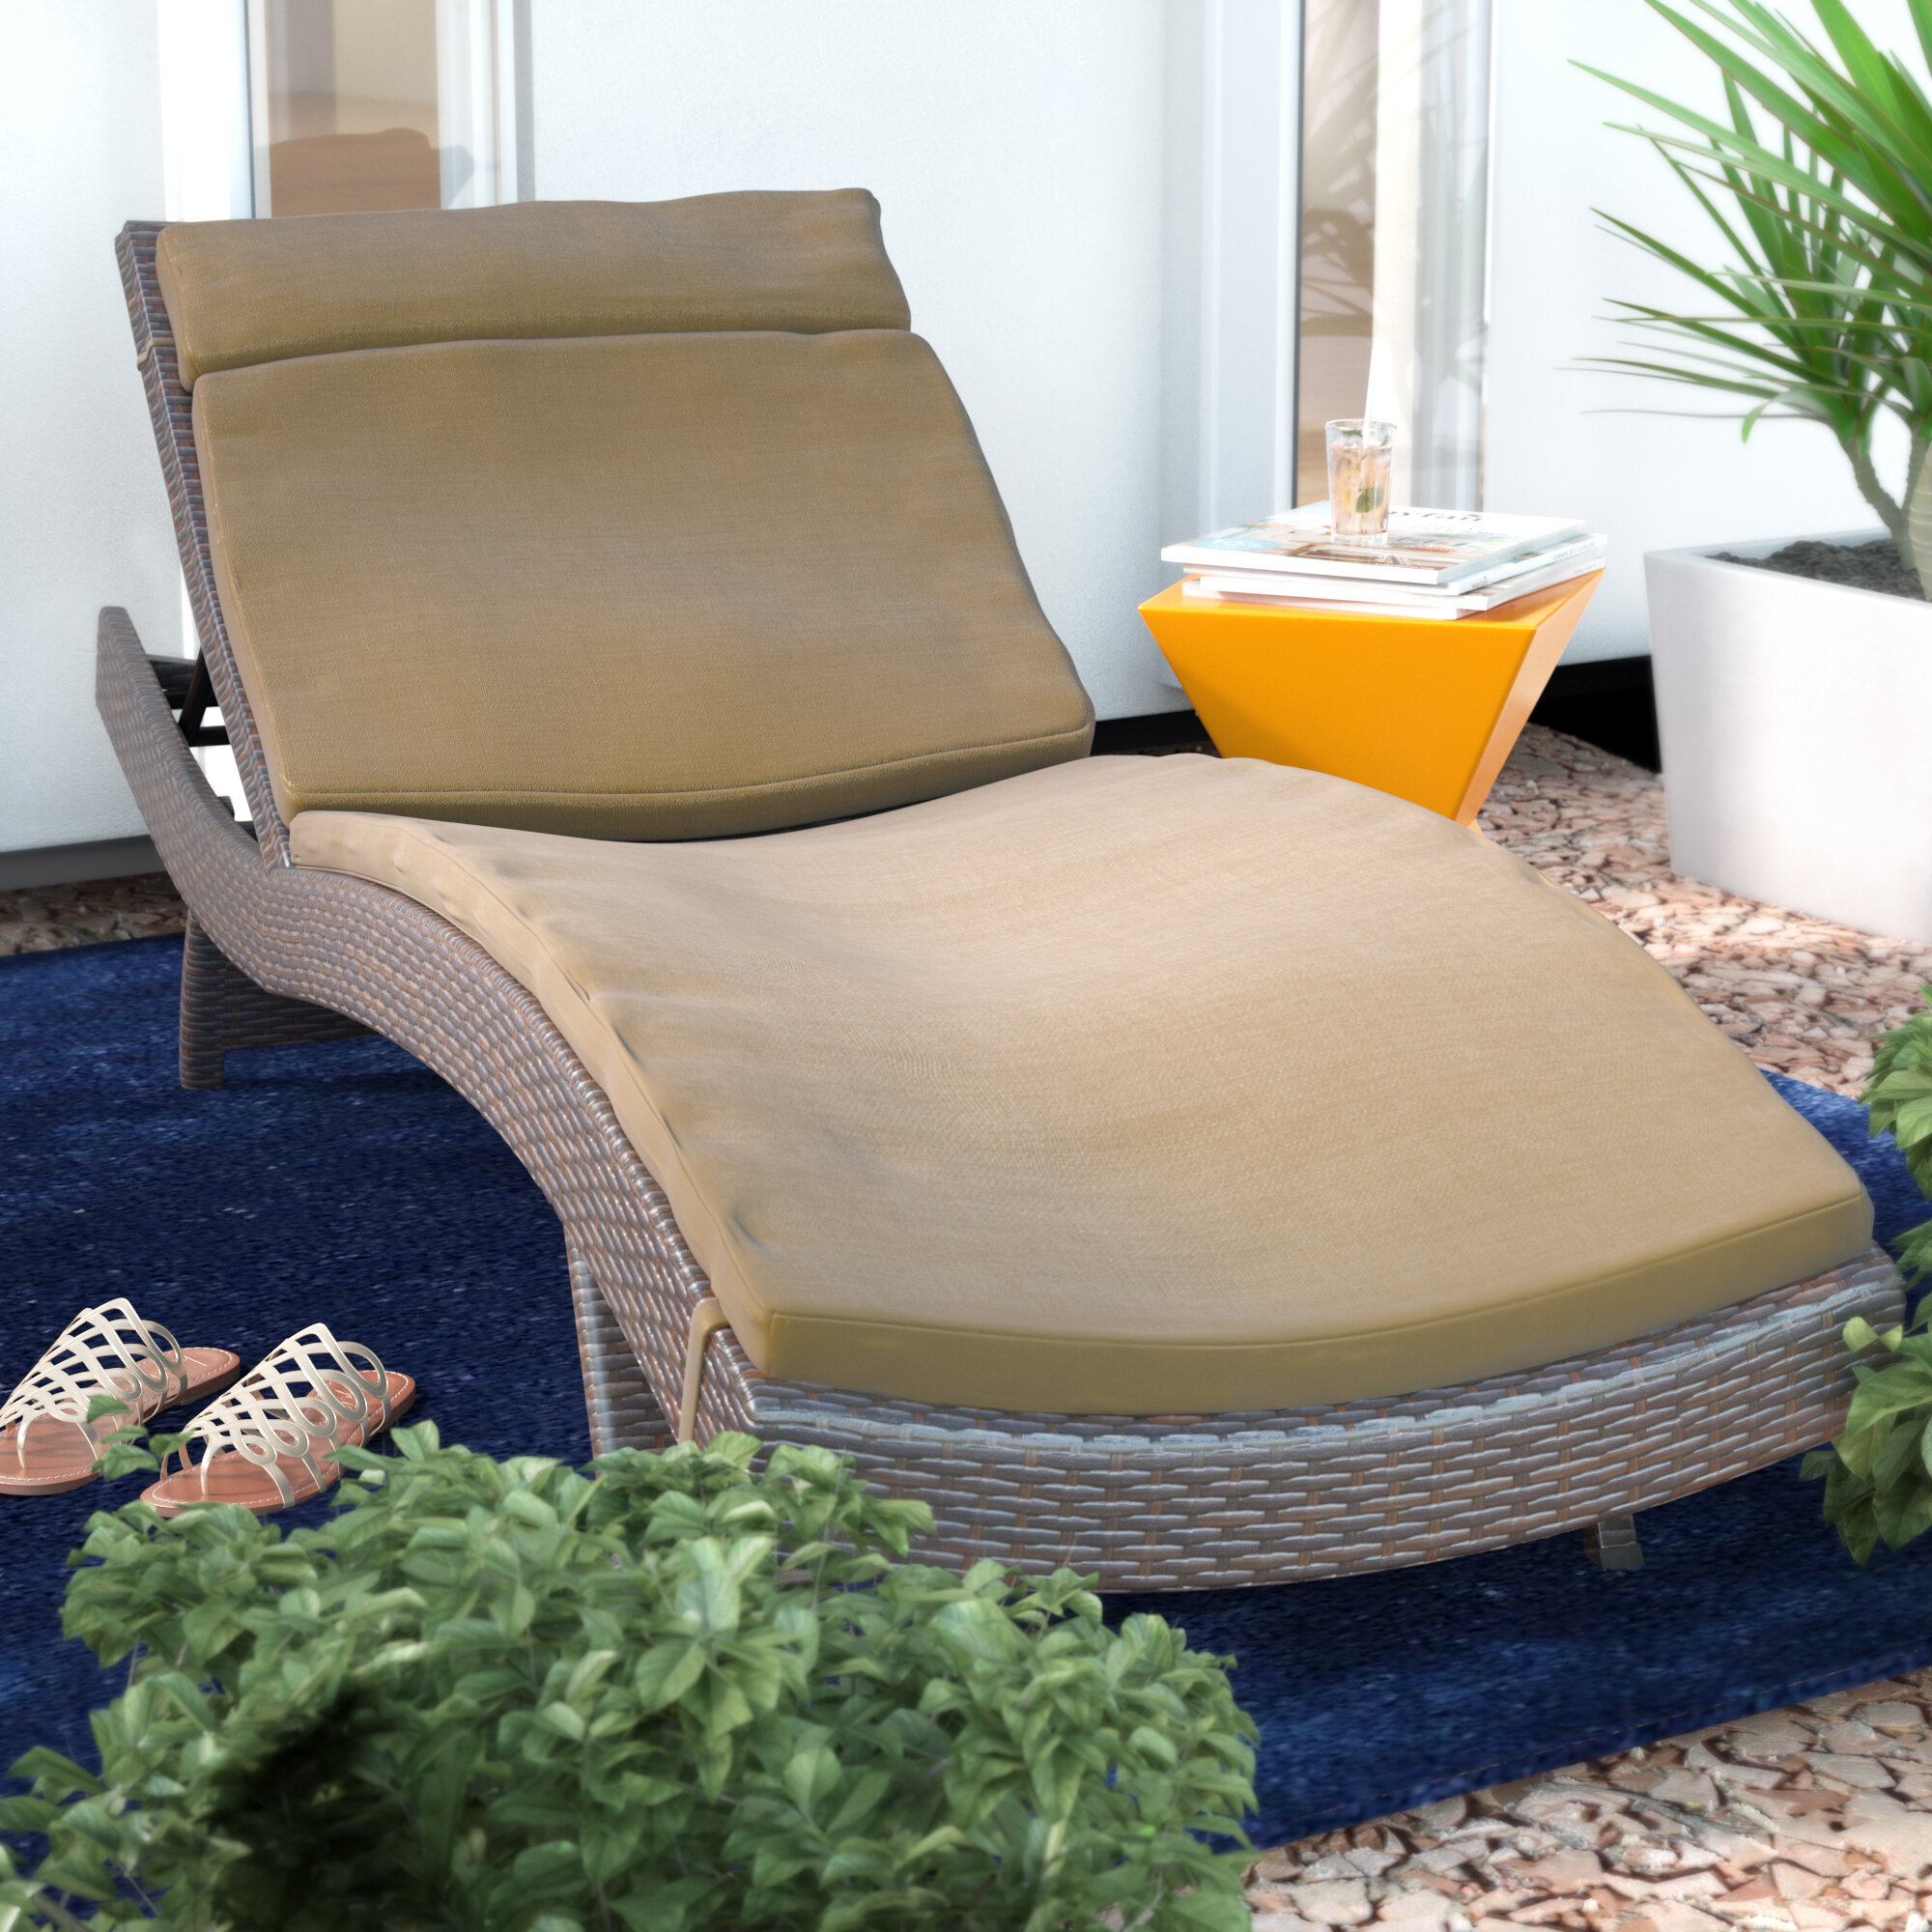 of for to full ideas pottery barn lounge design on make bakken bay outdoor chaise diy luxury build chairs size sale cushions hampton how